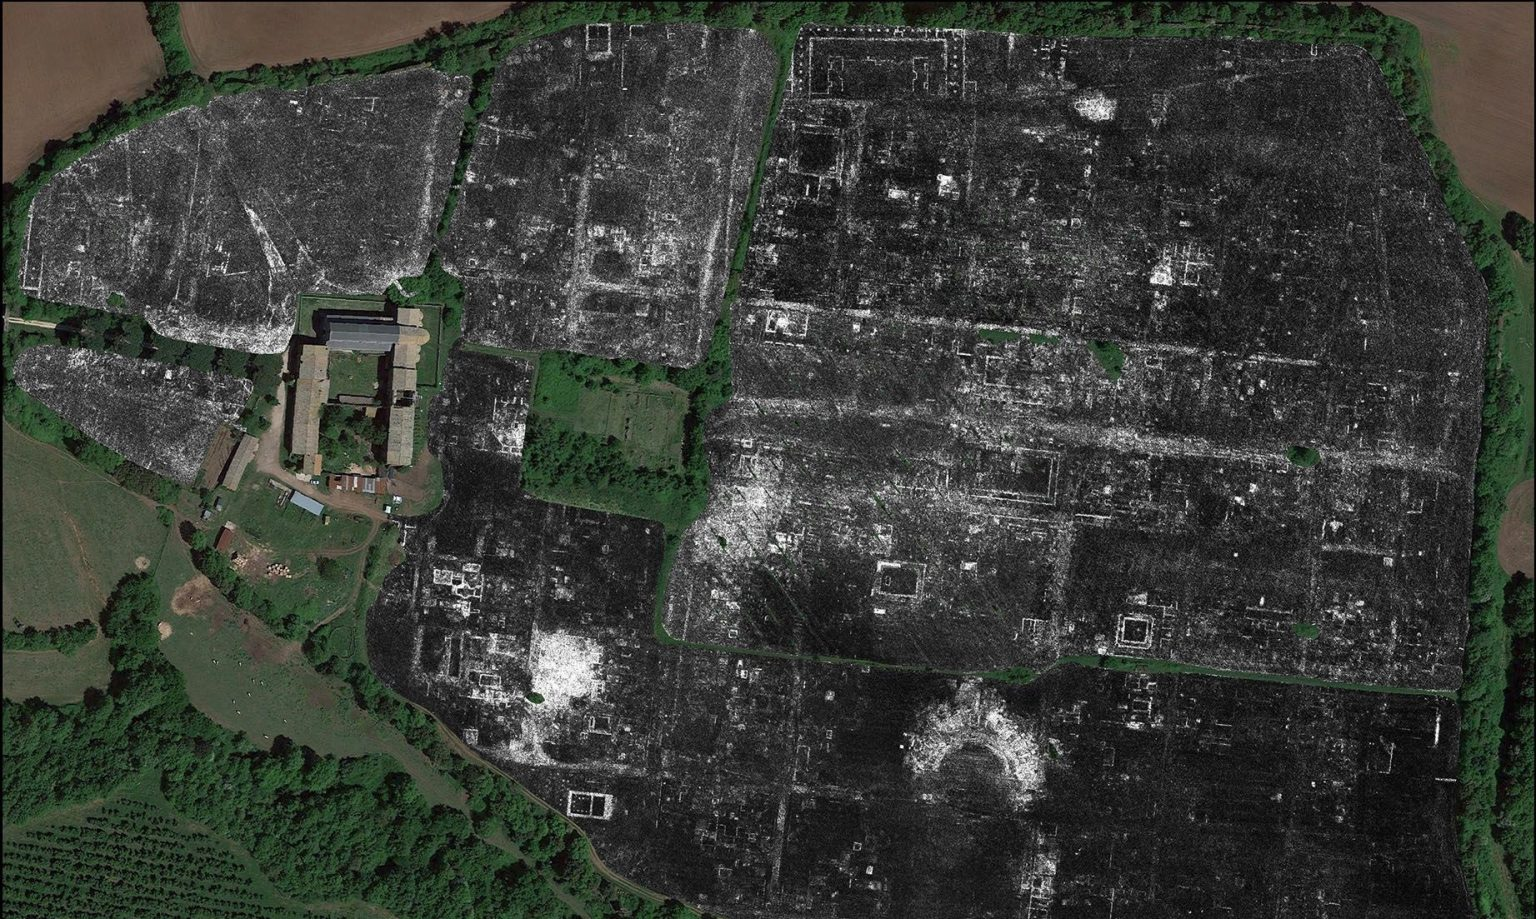 Buried Roman City Mapped in Stunning Detail Using Ground-Penetrating Radar